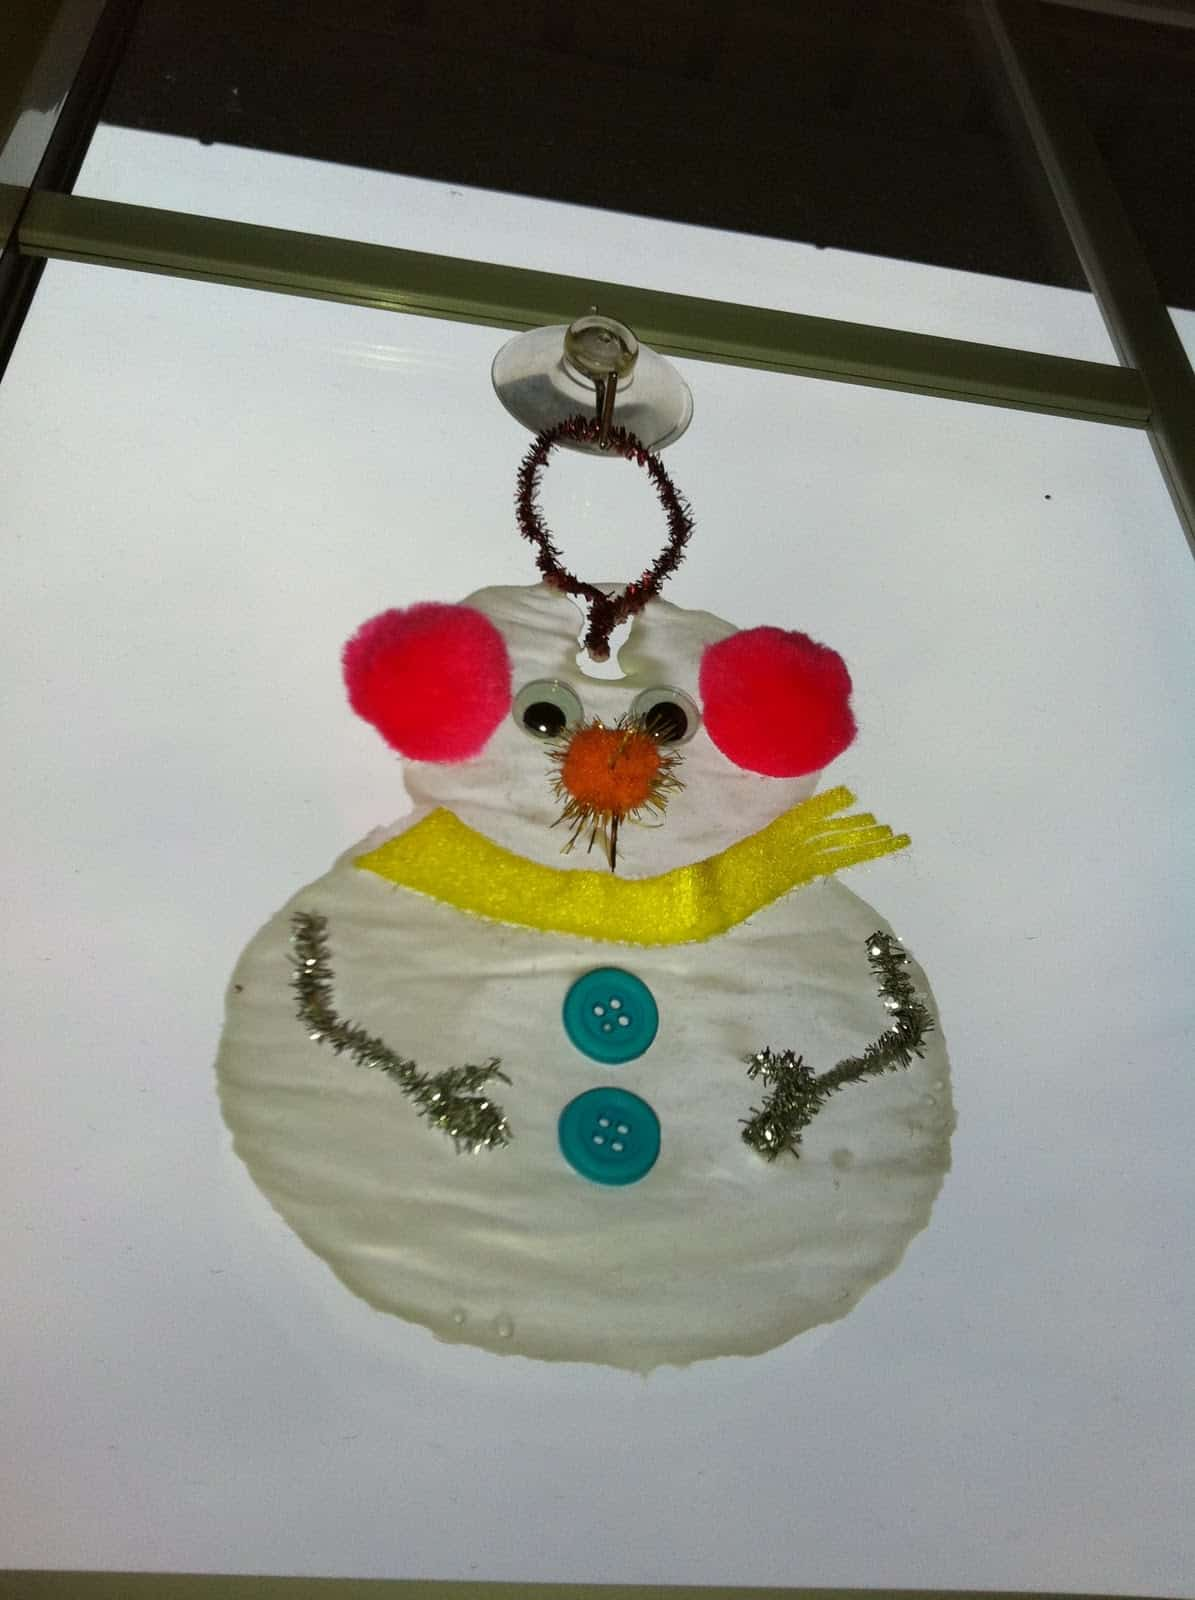 Glue snowman window cling